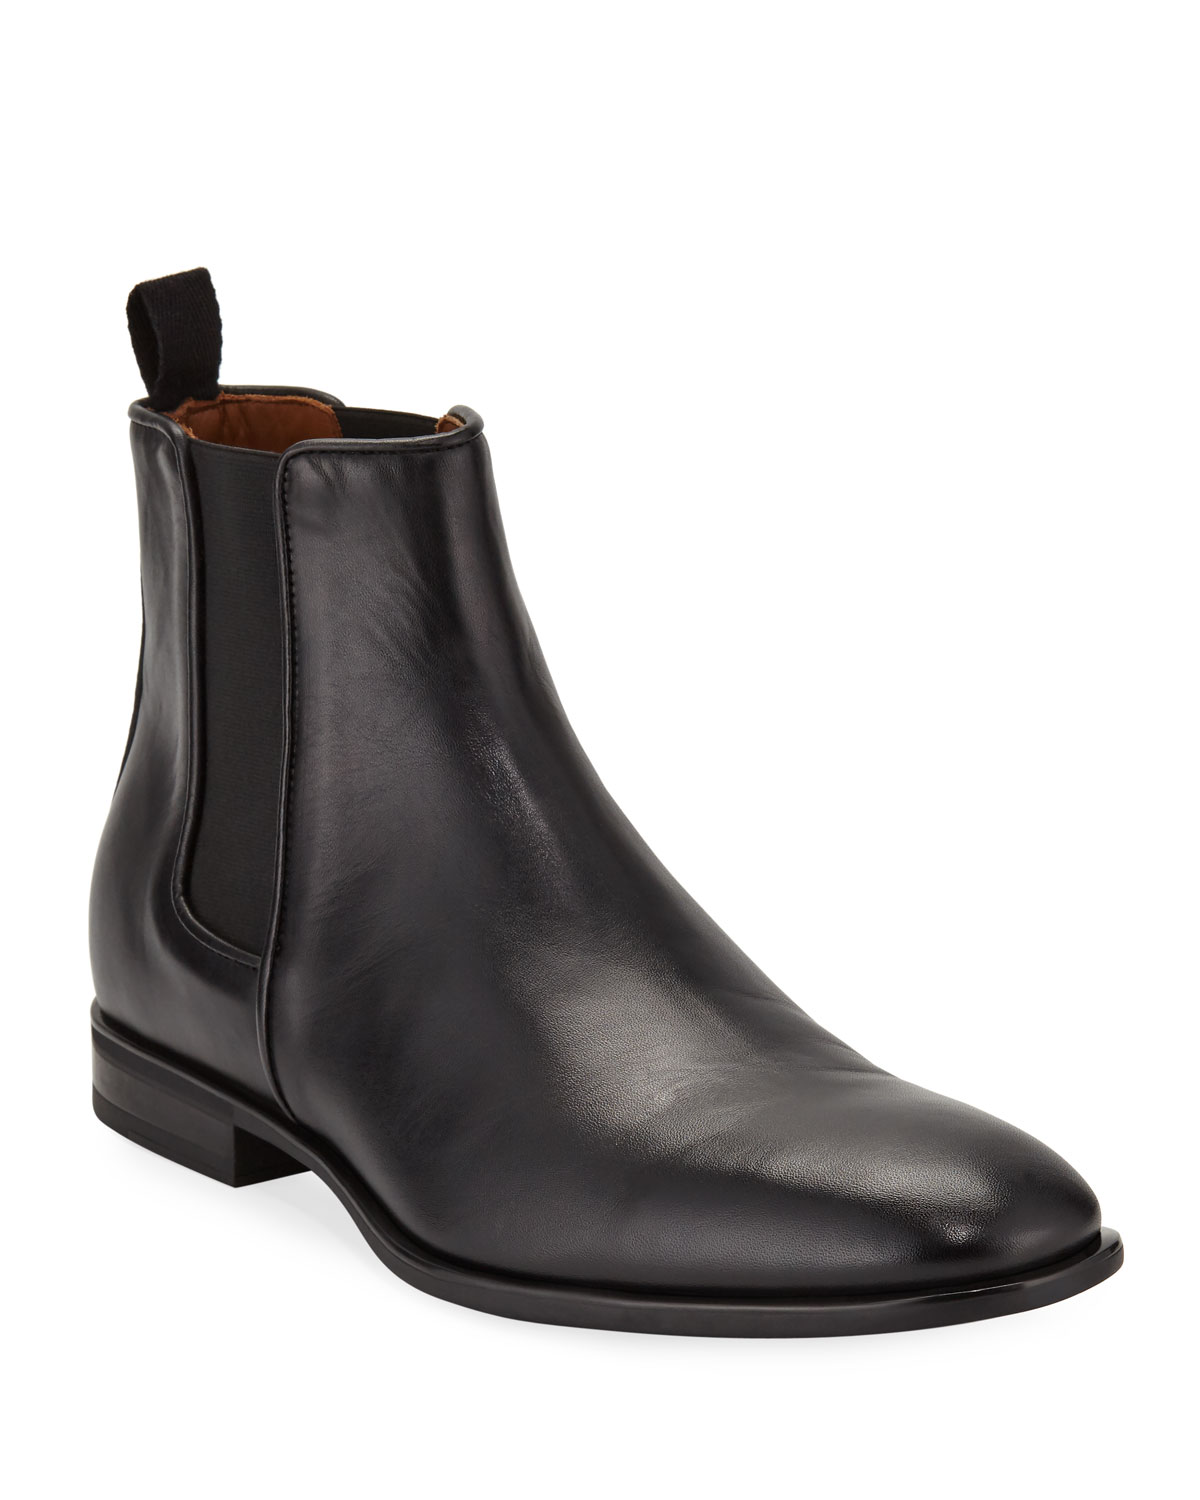 Men's Adrian Leather Dress Chelsea Boots